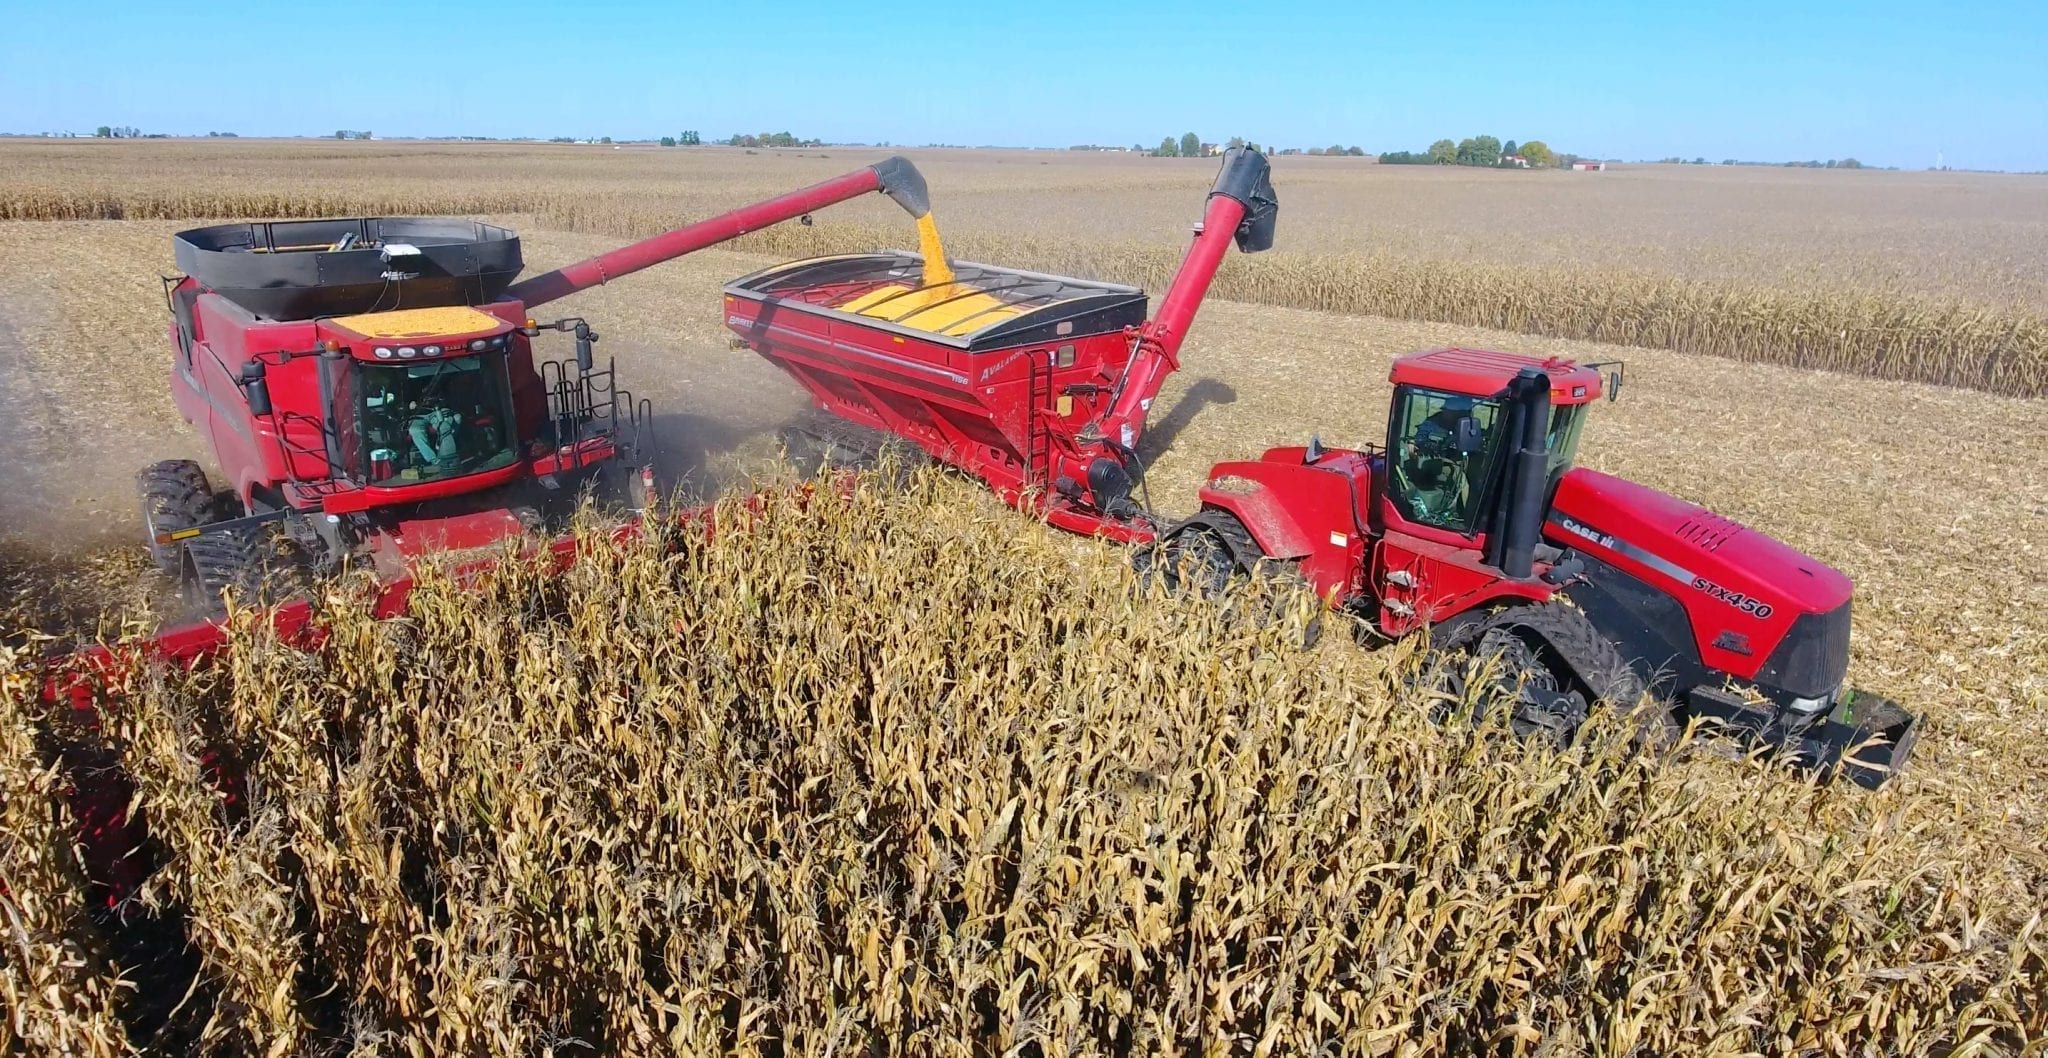 Red Combine graincarts in a corn field